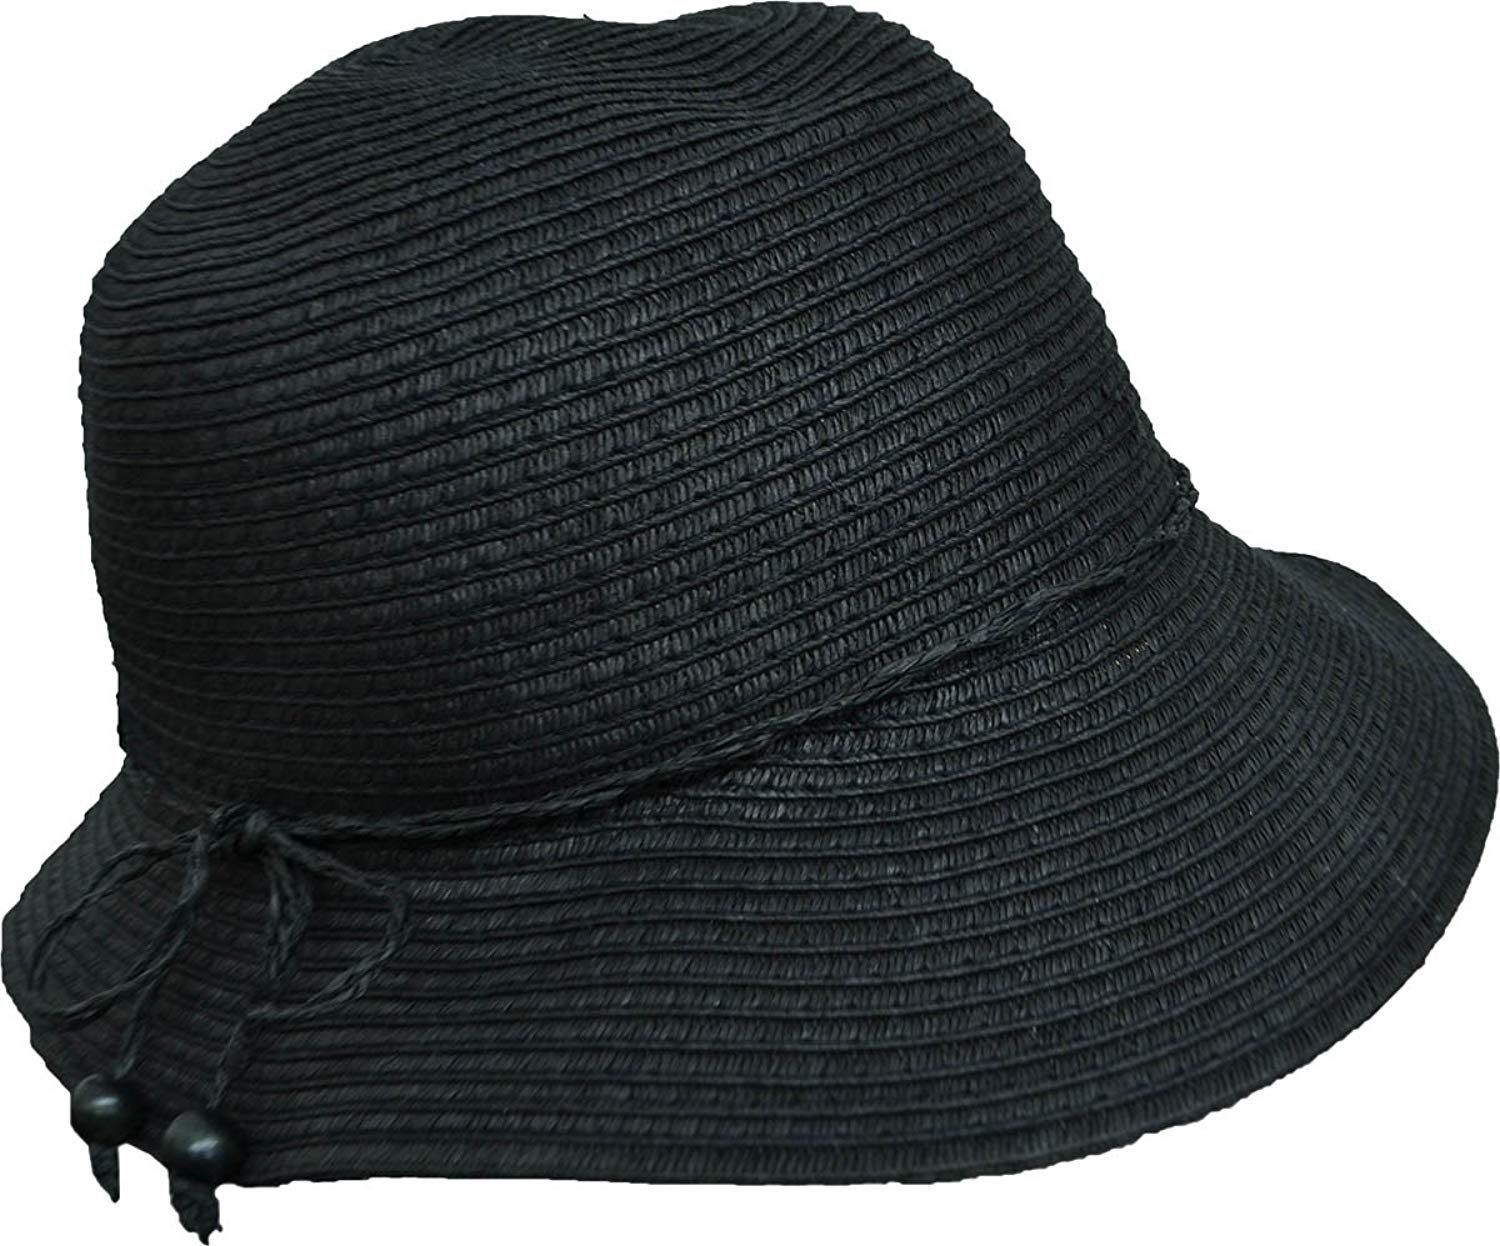 e9585b86e7f Get Quotations · August Hat Co Women s Vintage Classic Cloche Hat Black